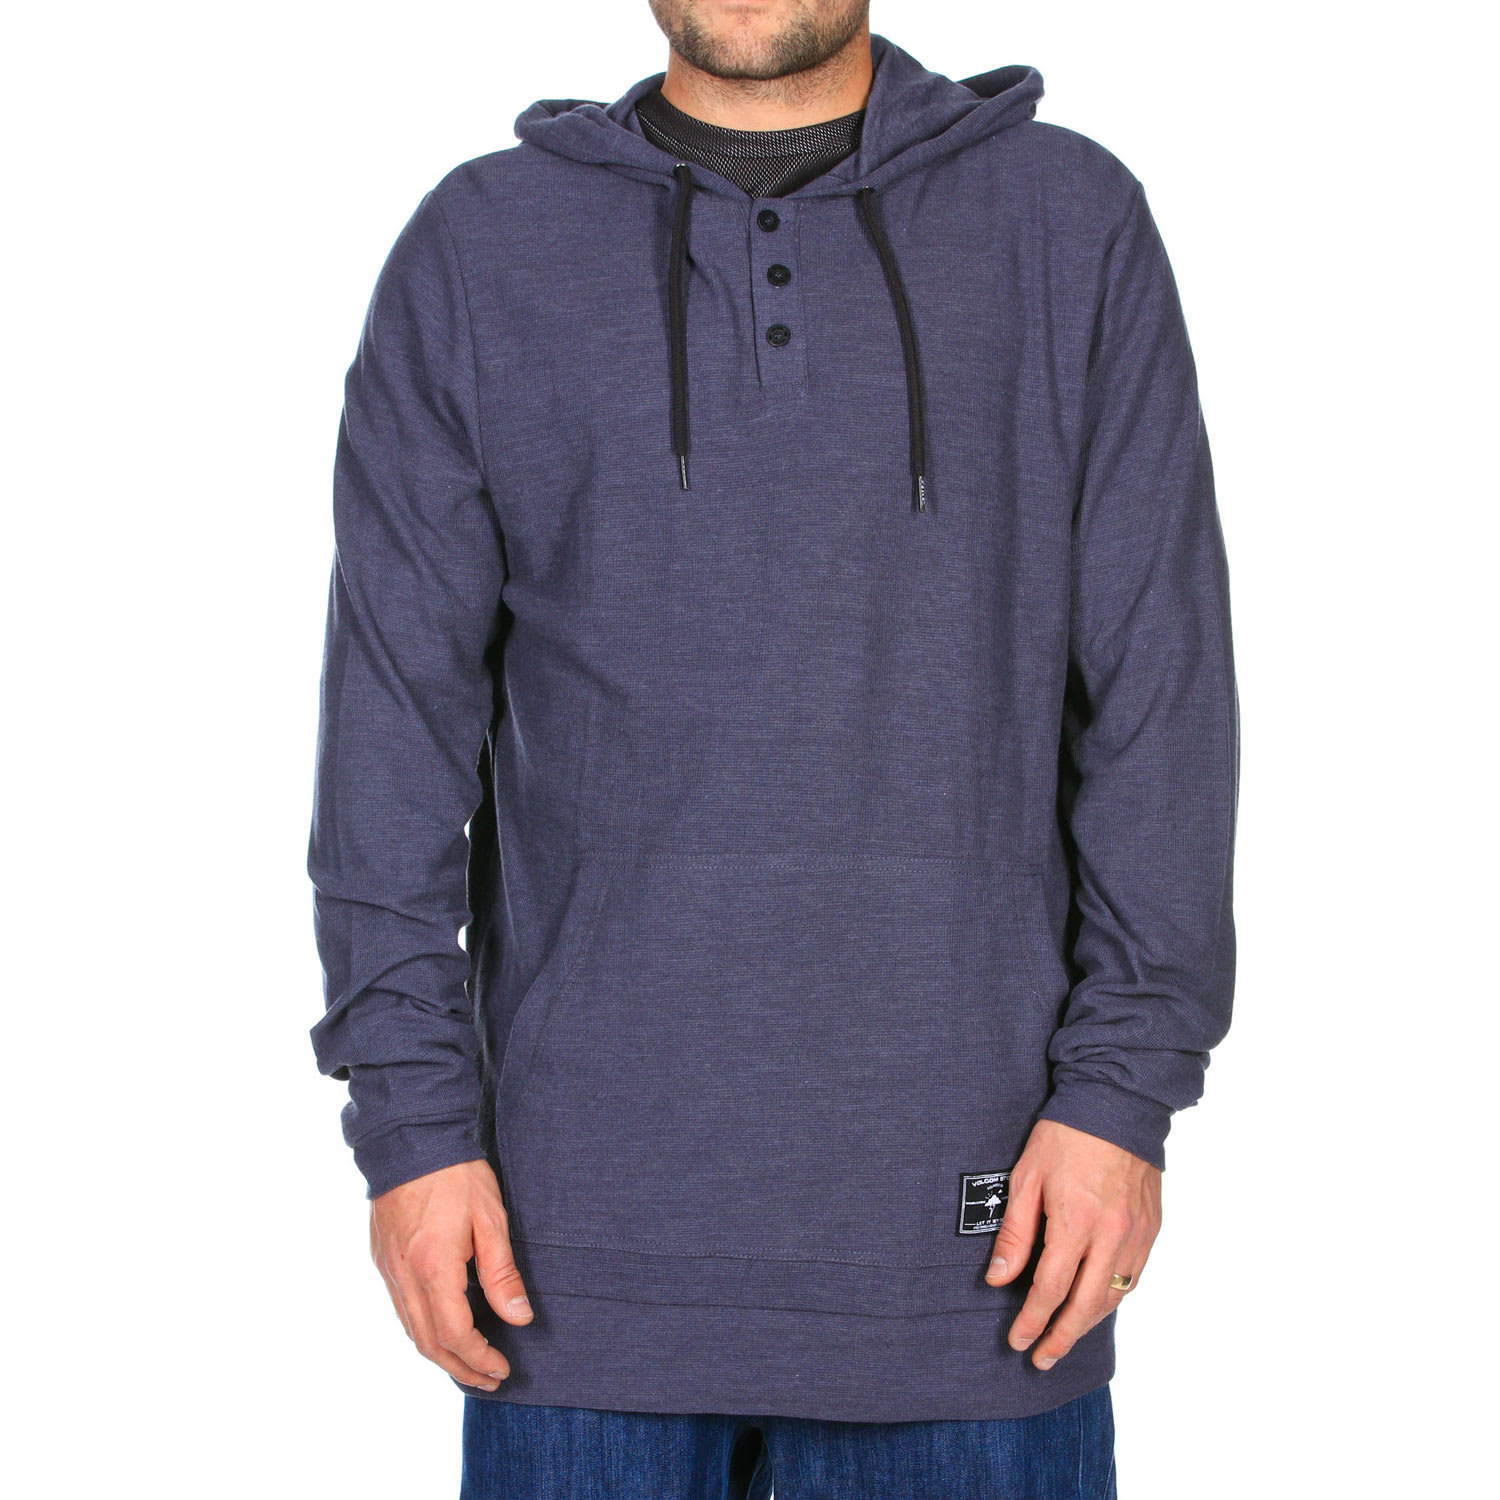 Shop for Volcom Snowside Hoodie Charcoal Heather - Men's